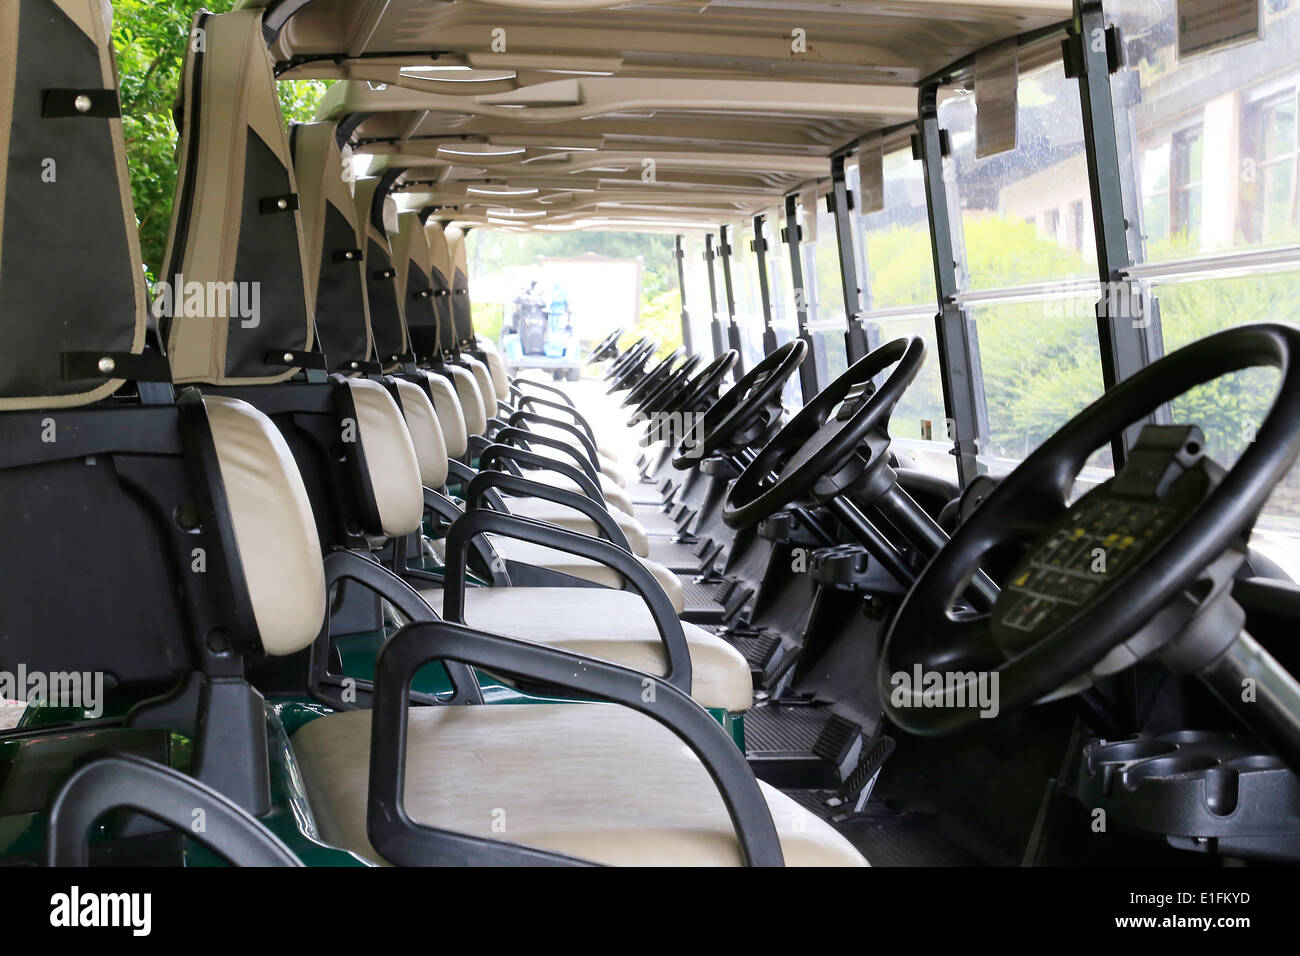 Golf carts buggies lined up ready to go - Stock Image